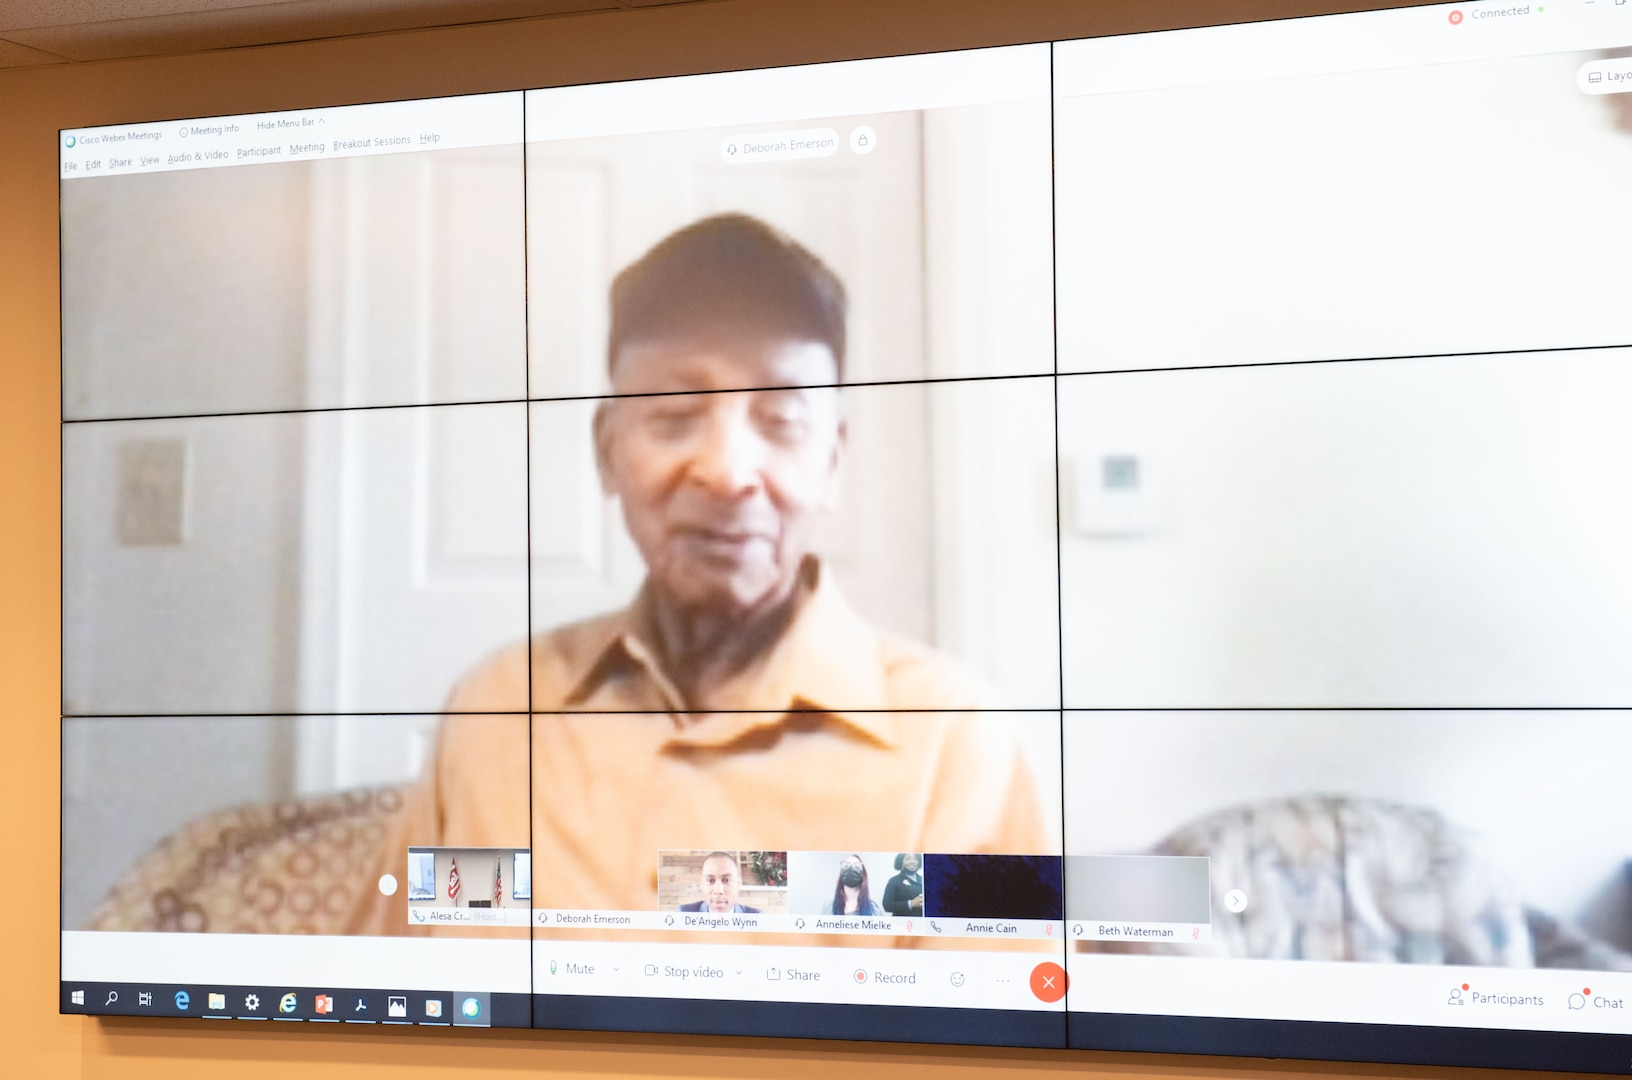 Staff Sgt. Buddy C. Reynolds, a 100 year old WWII veteran speaks about his life and time in the Army to members of the U.S. Army Corps of Engineers Transatlantic Division and Middle East District during a virtual Black History Month event.